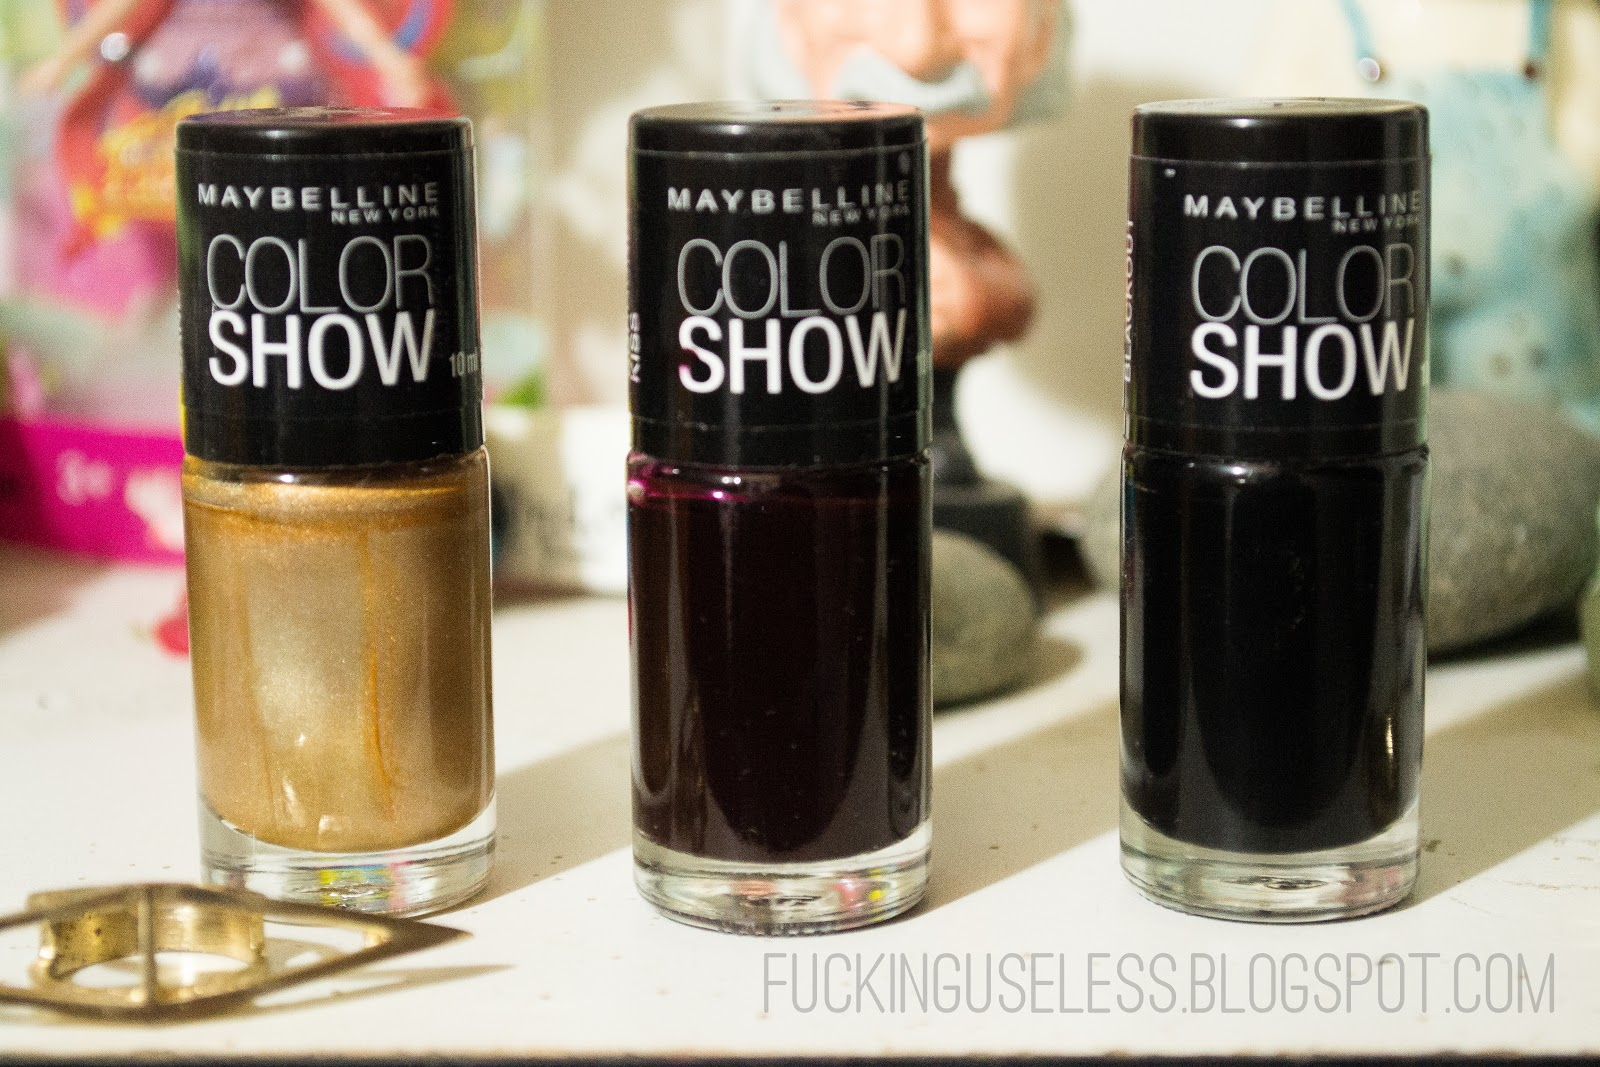 colorshow maybelline